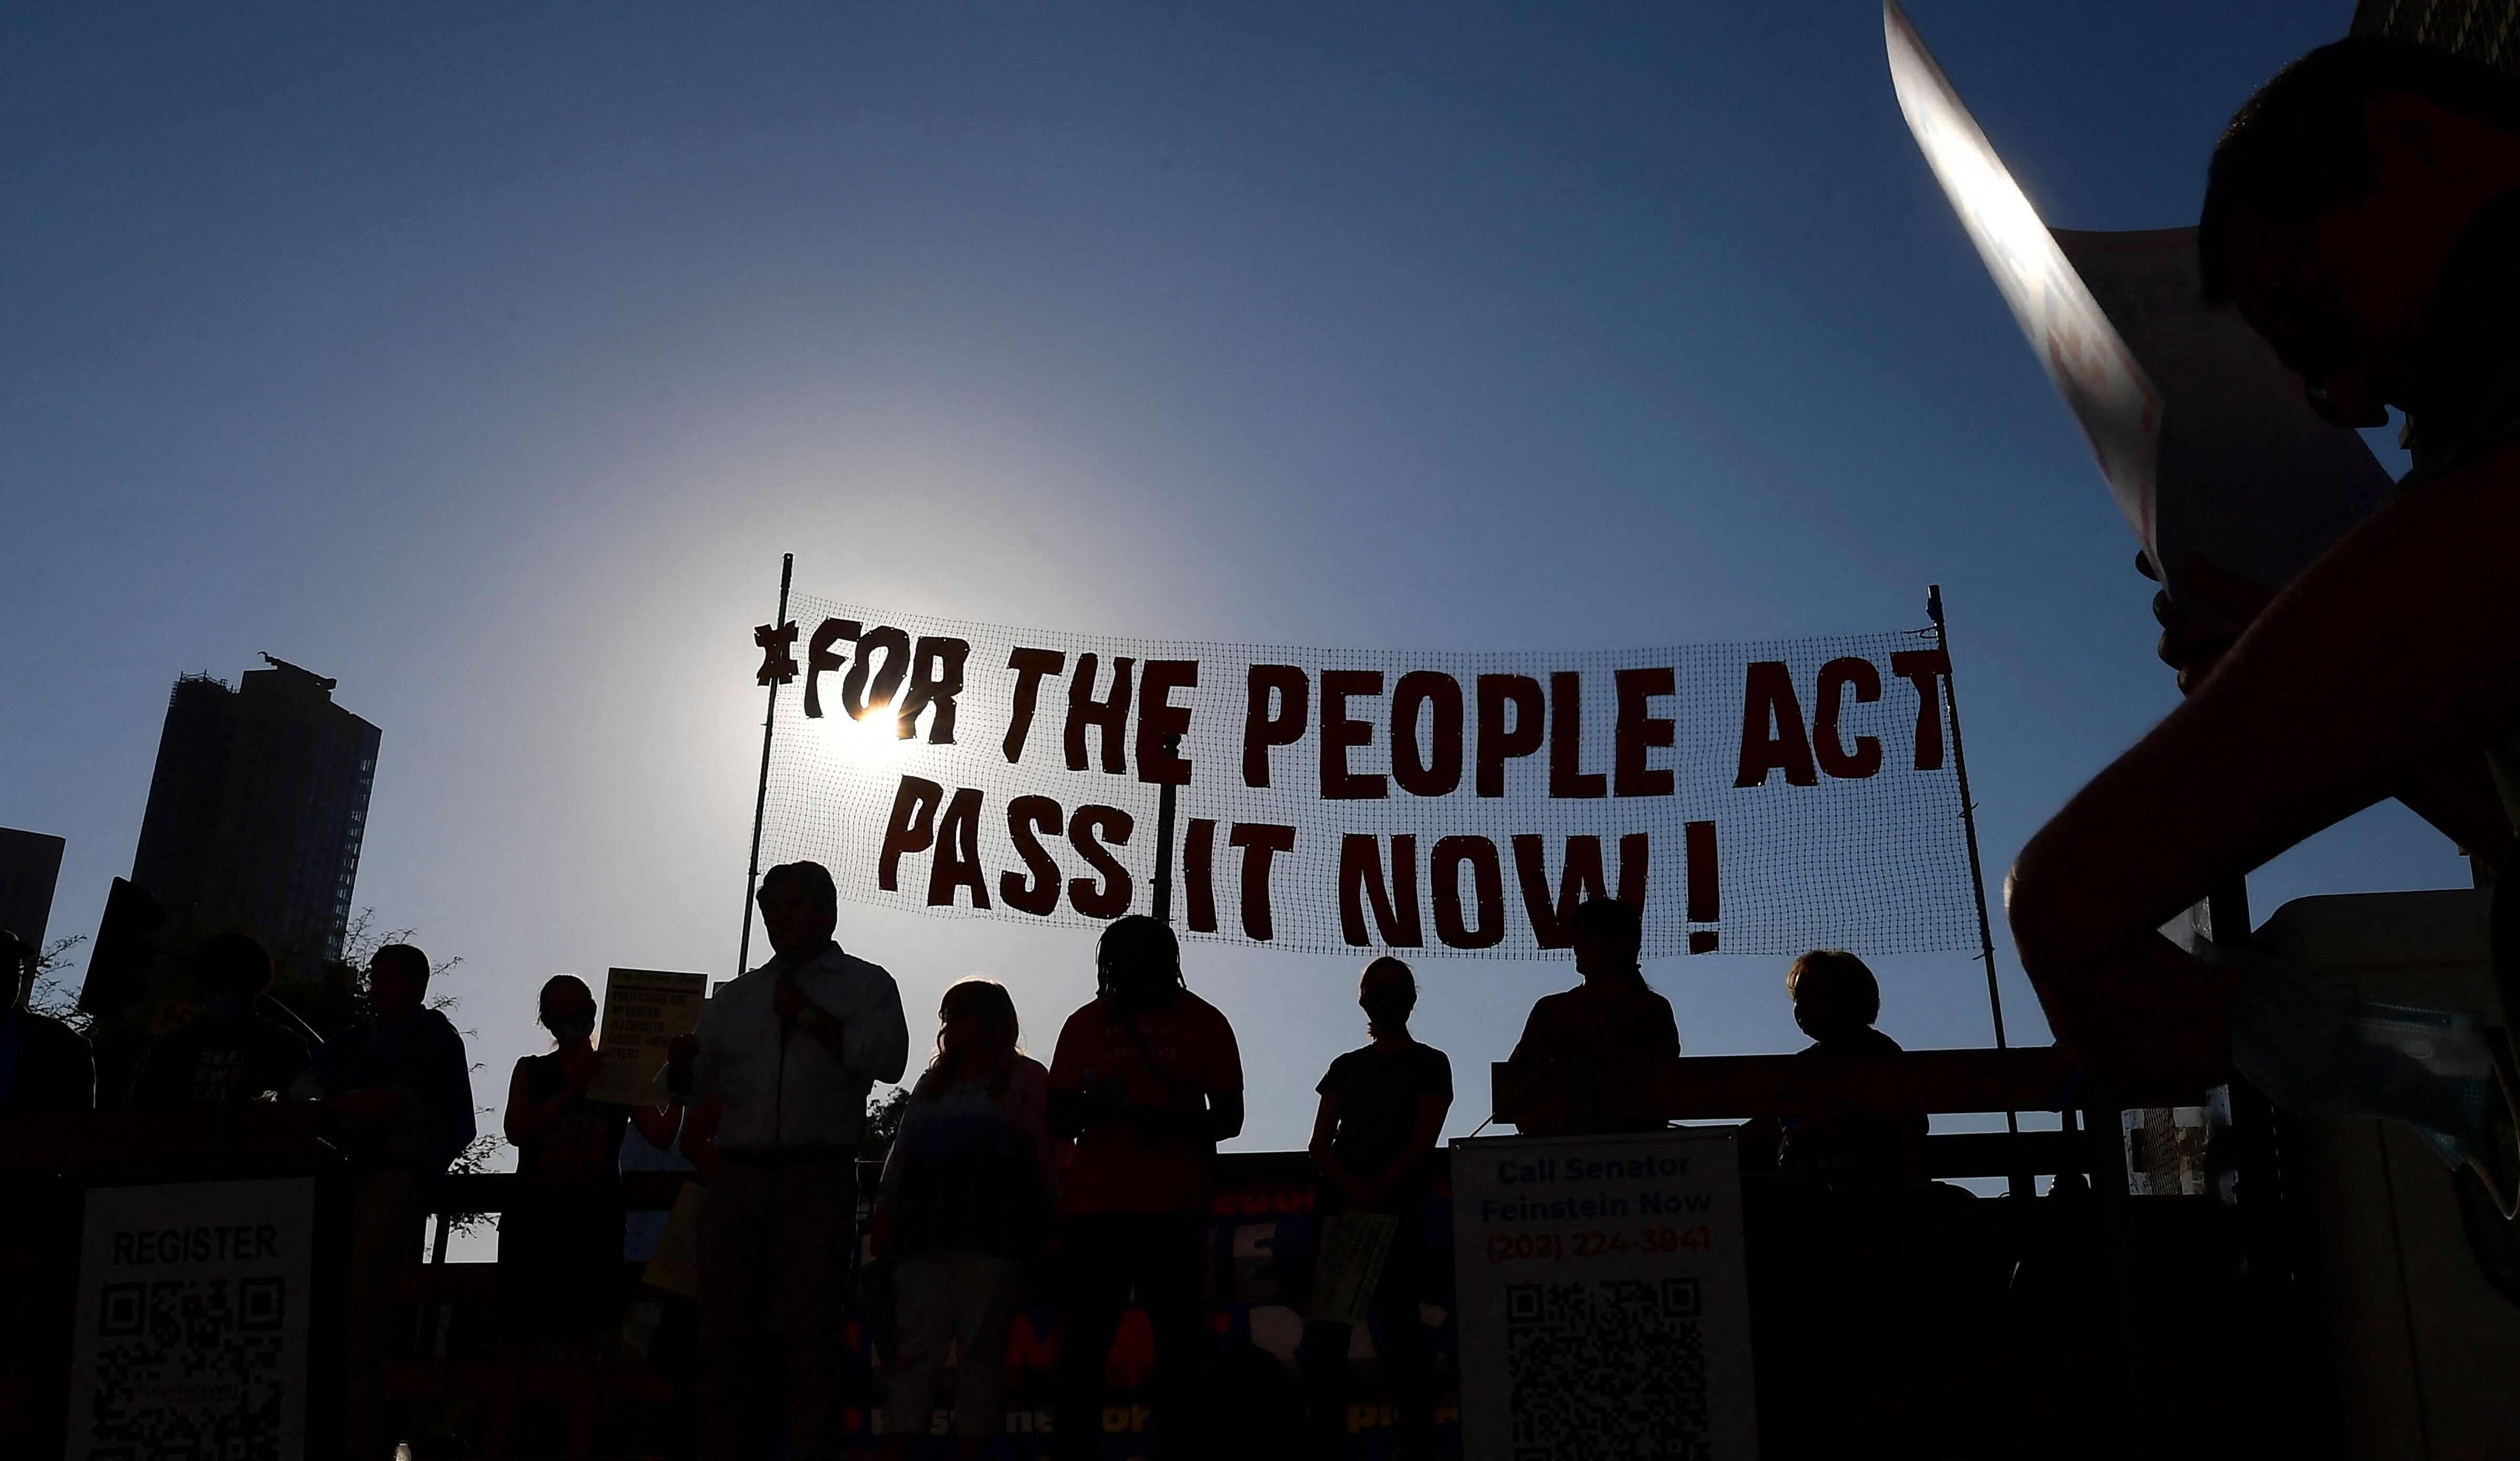 Activists from various grassroots organizations rally outside City Hall in Los Angeles on July 7 to call on Congress and Sen.